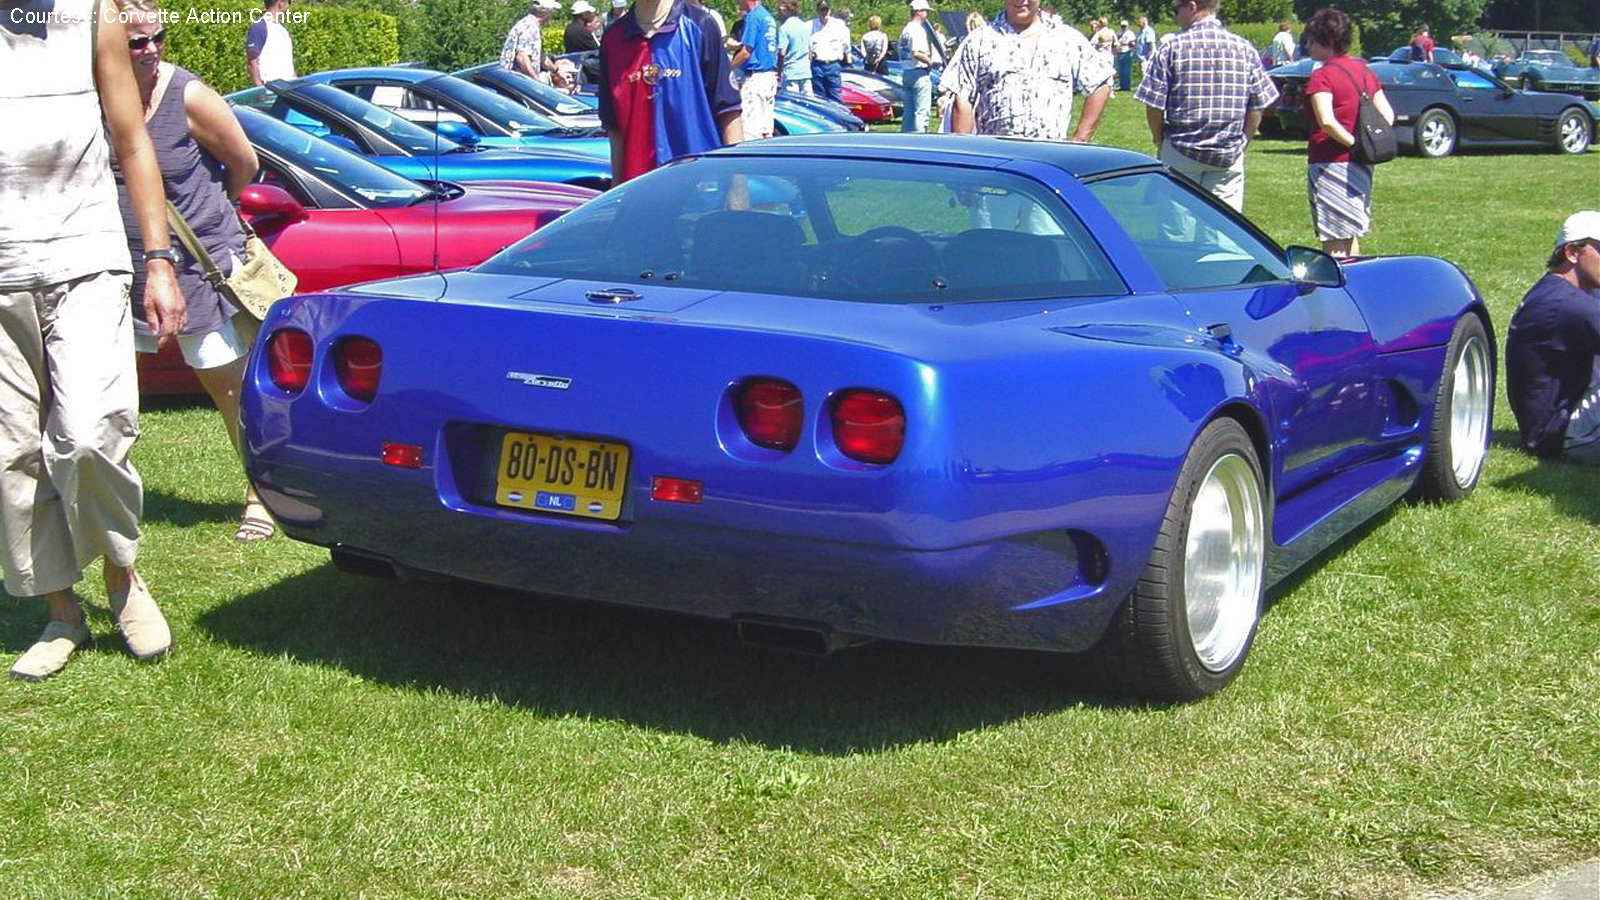 Widebody C4 Corvette to Make Things Different